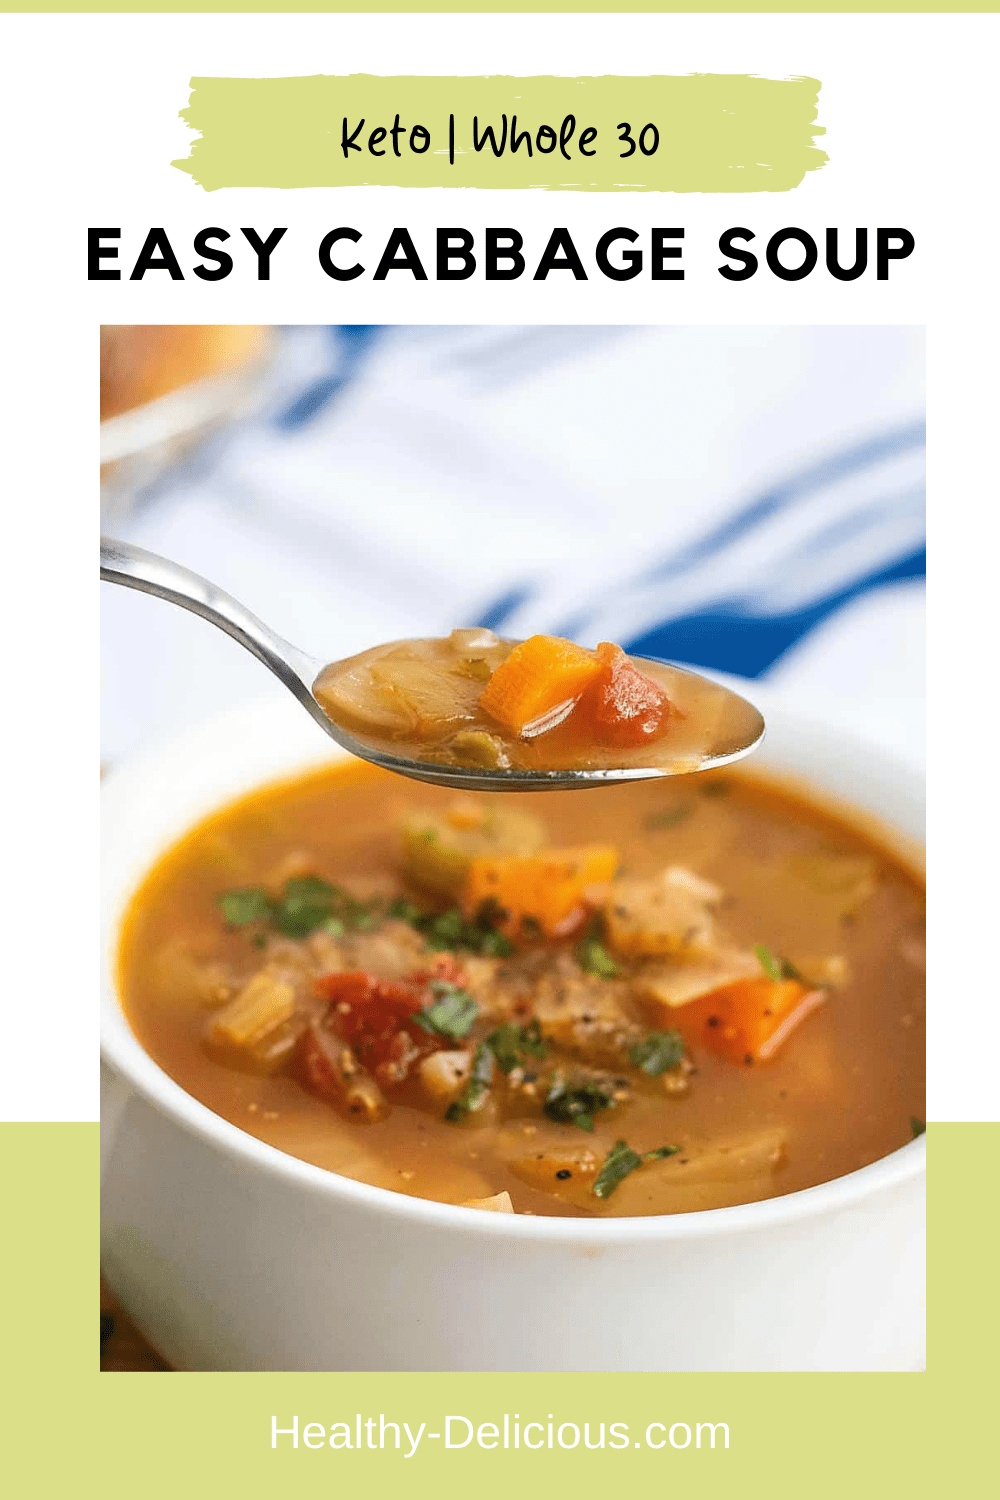 This flavorful cabbage soup comes together in just about a half hour. It's a great way to warm up on a chilly day - or freeze it for later! It's vegetarian, low carb, and gluten-free as written, but you can make it your own by adding meat or beans. via @HealthyDelish